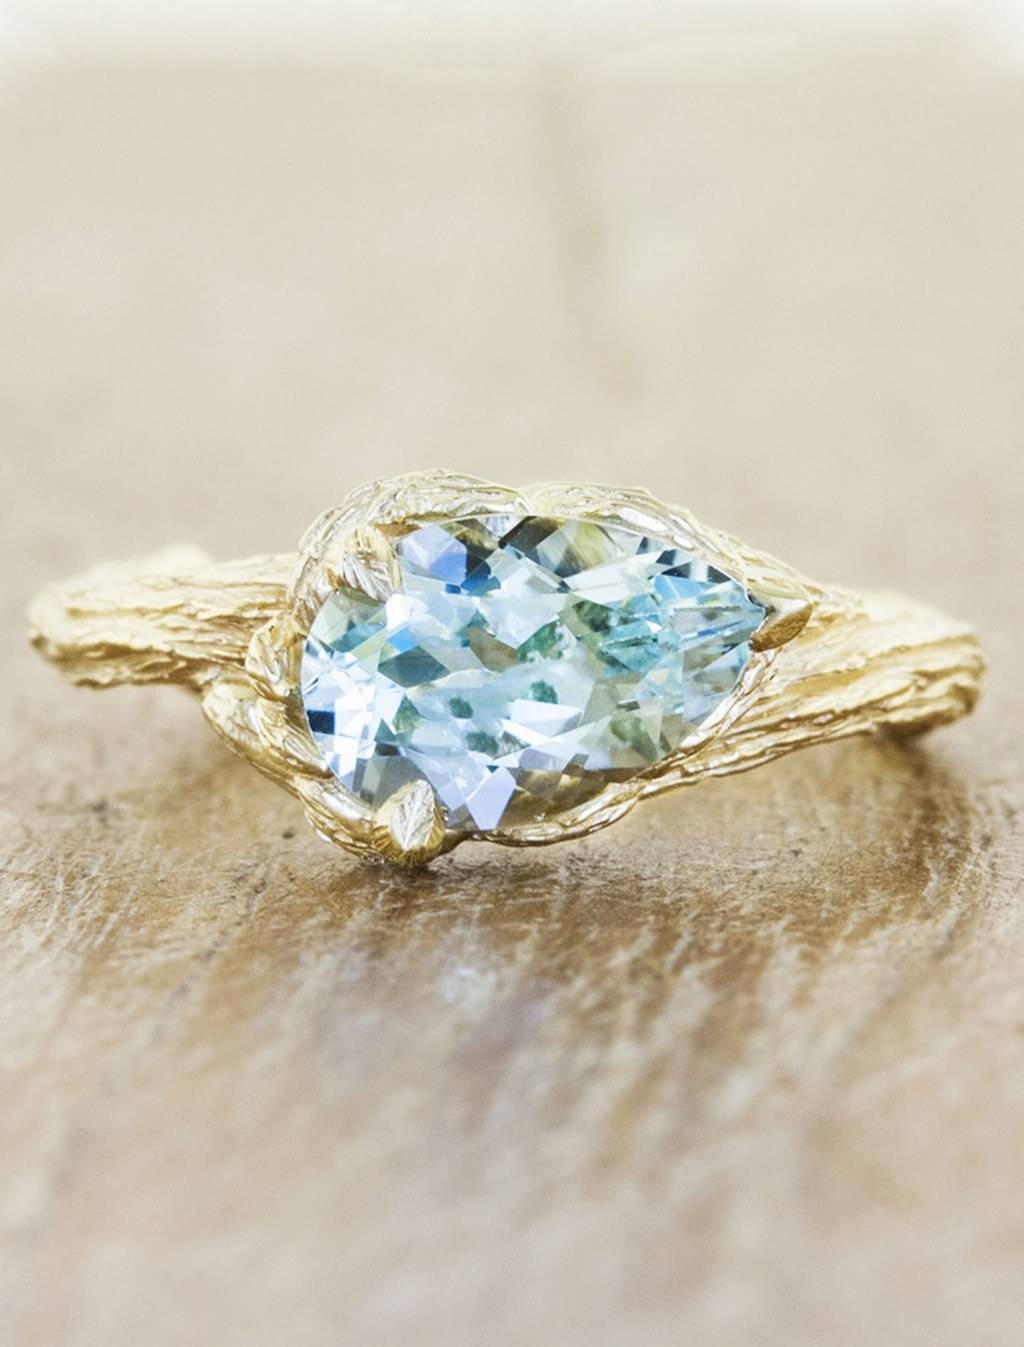 Unique Engagement Rings: Rustic Engagement Rings, Eco Friendly Pertaining To Rustic Engagement Rings (View 7 of 15)